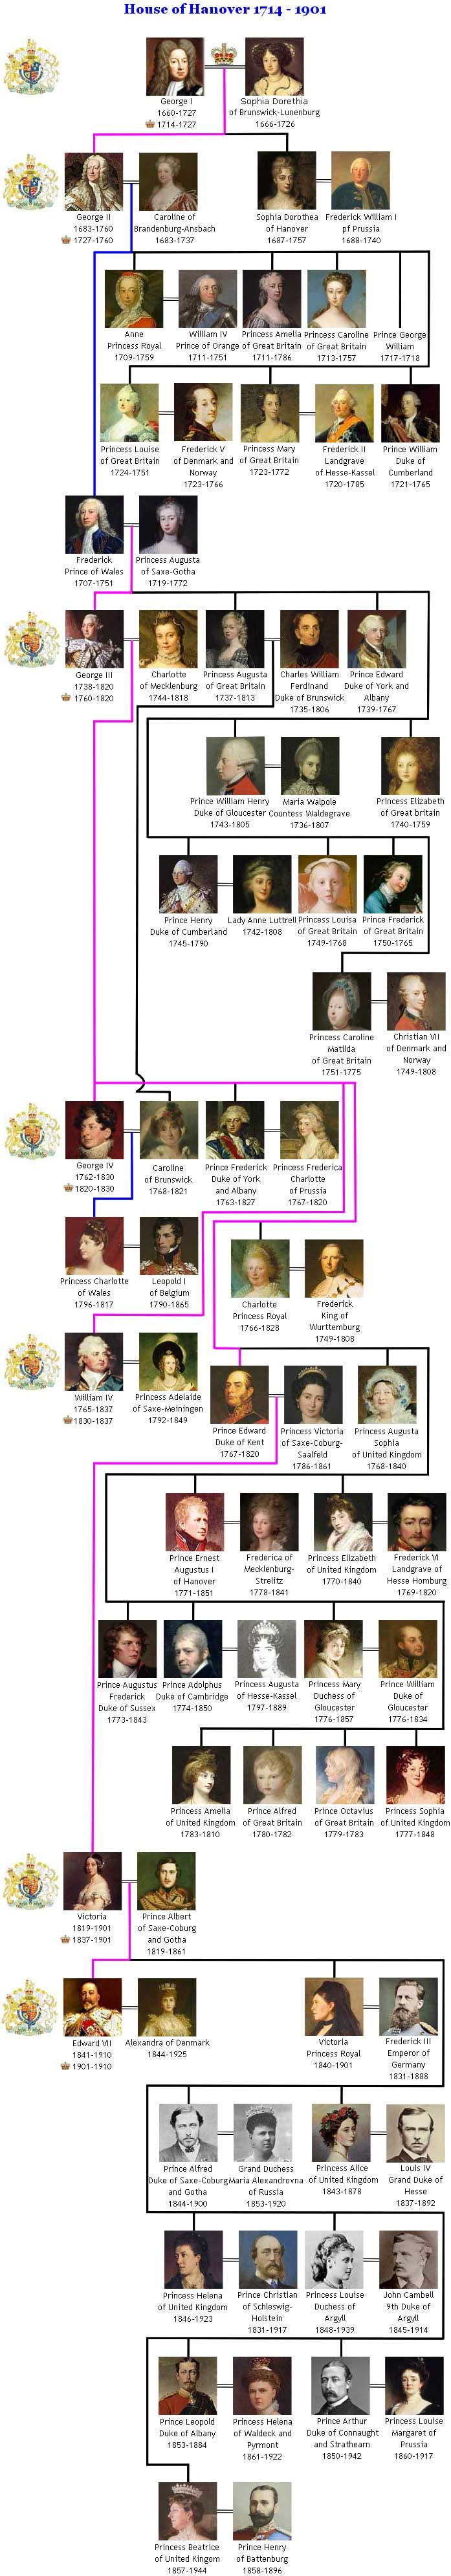 The Royal House of Hanover was the first dynasty in Great Britain. Search the family tree and read detailed descriptions of it's royal family members